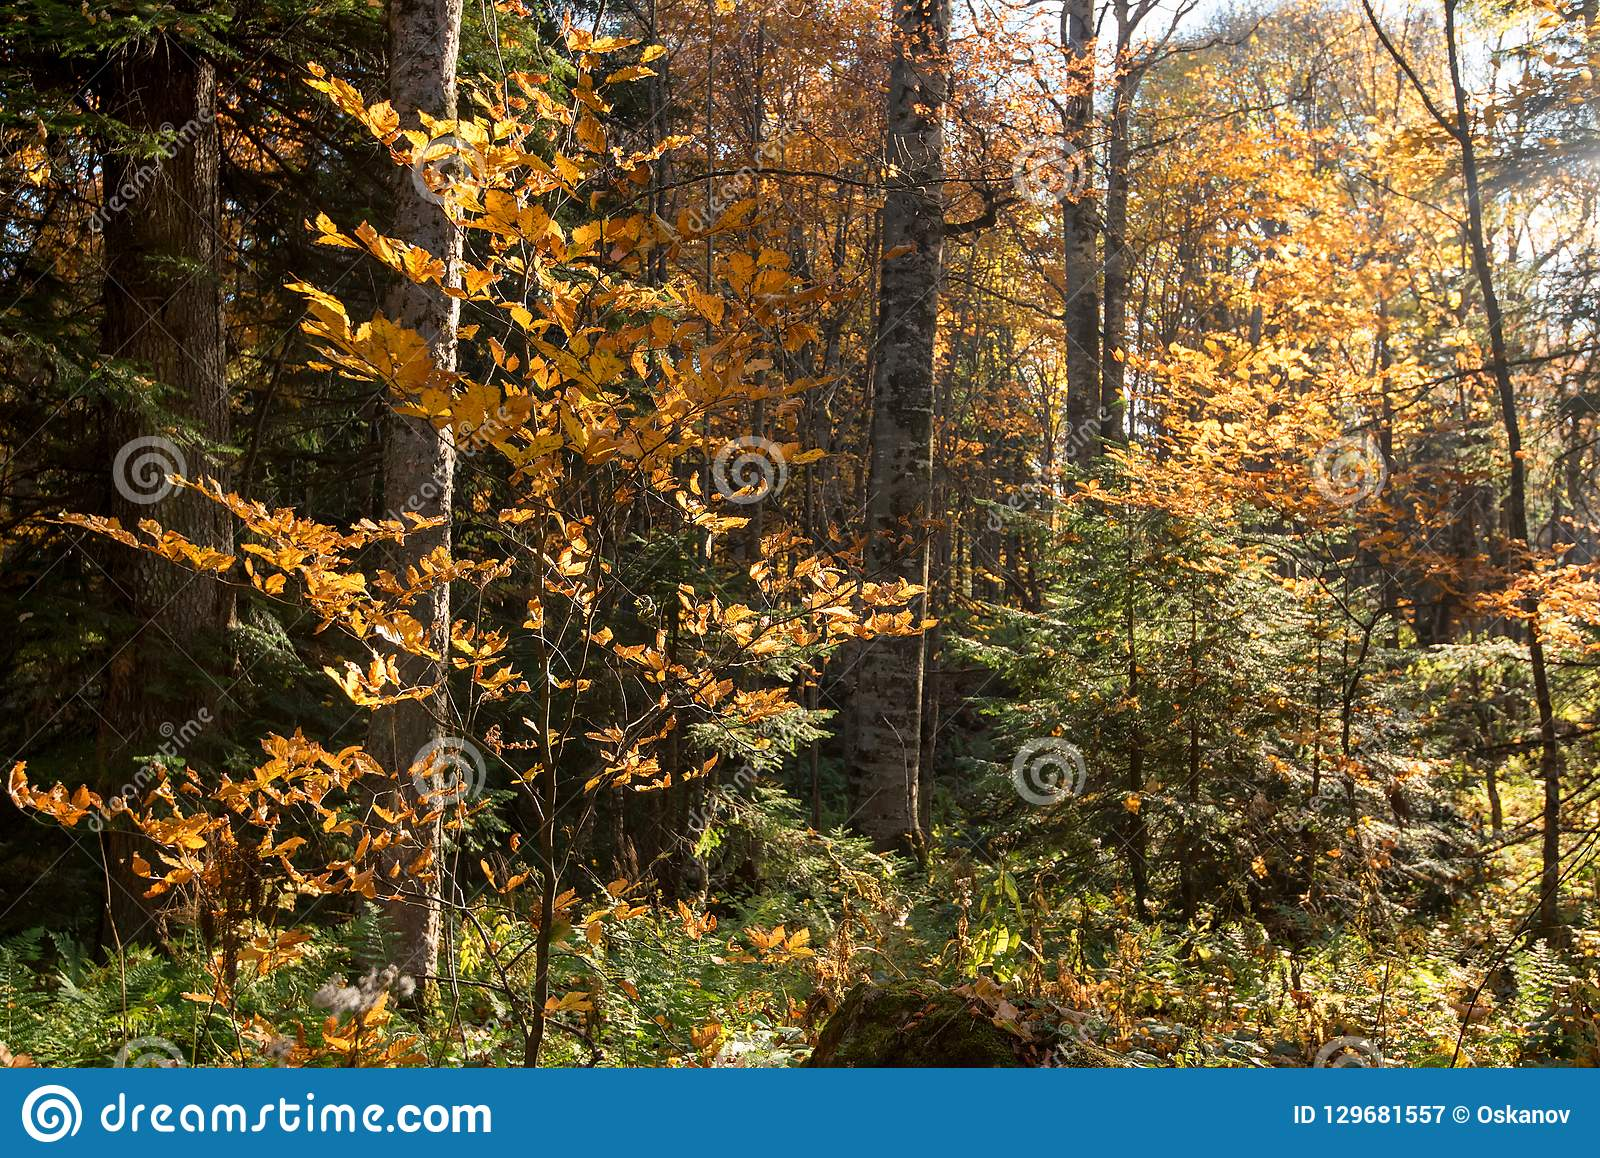 Scenic landscape of beautiful sunlit autumn forest